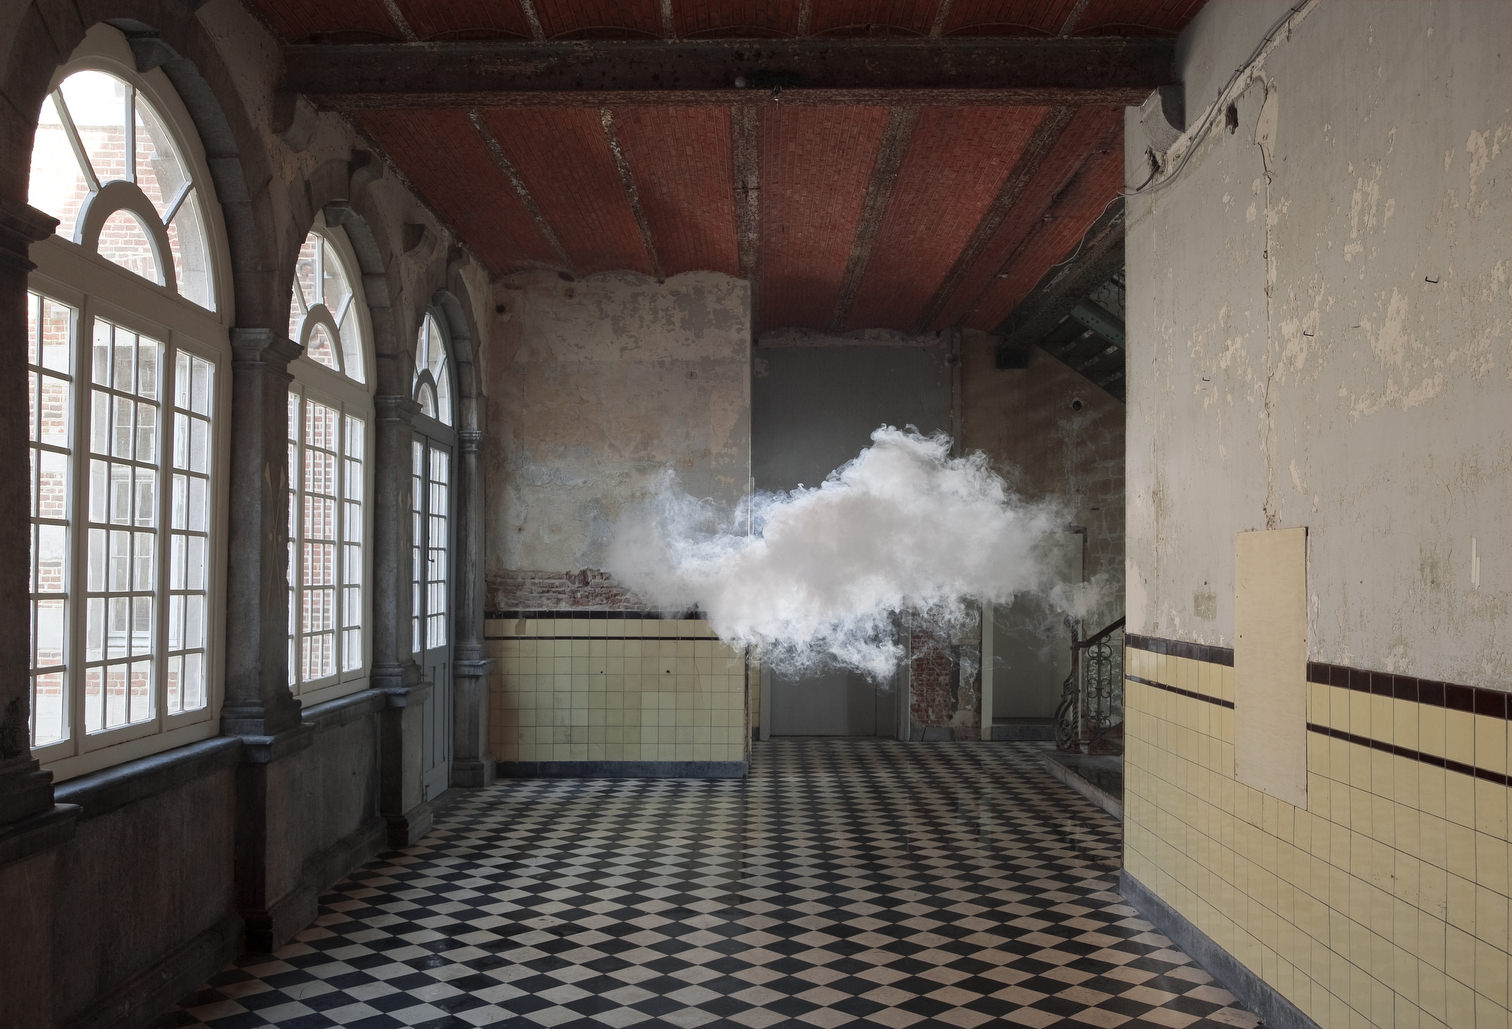 Berndnaut Smilde  Nimbus D'Aspremont, 2012  digital C-type print on dibond 75 x 112 cm